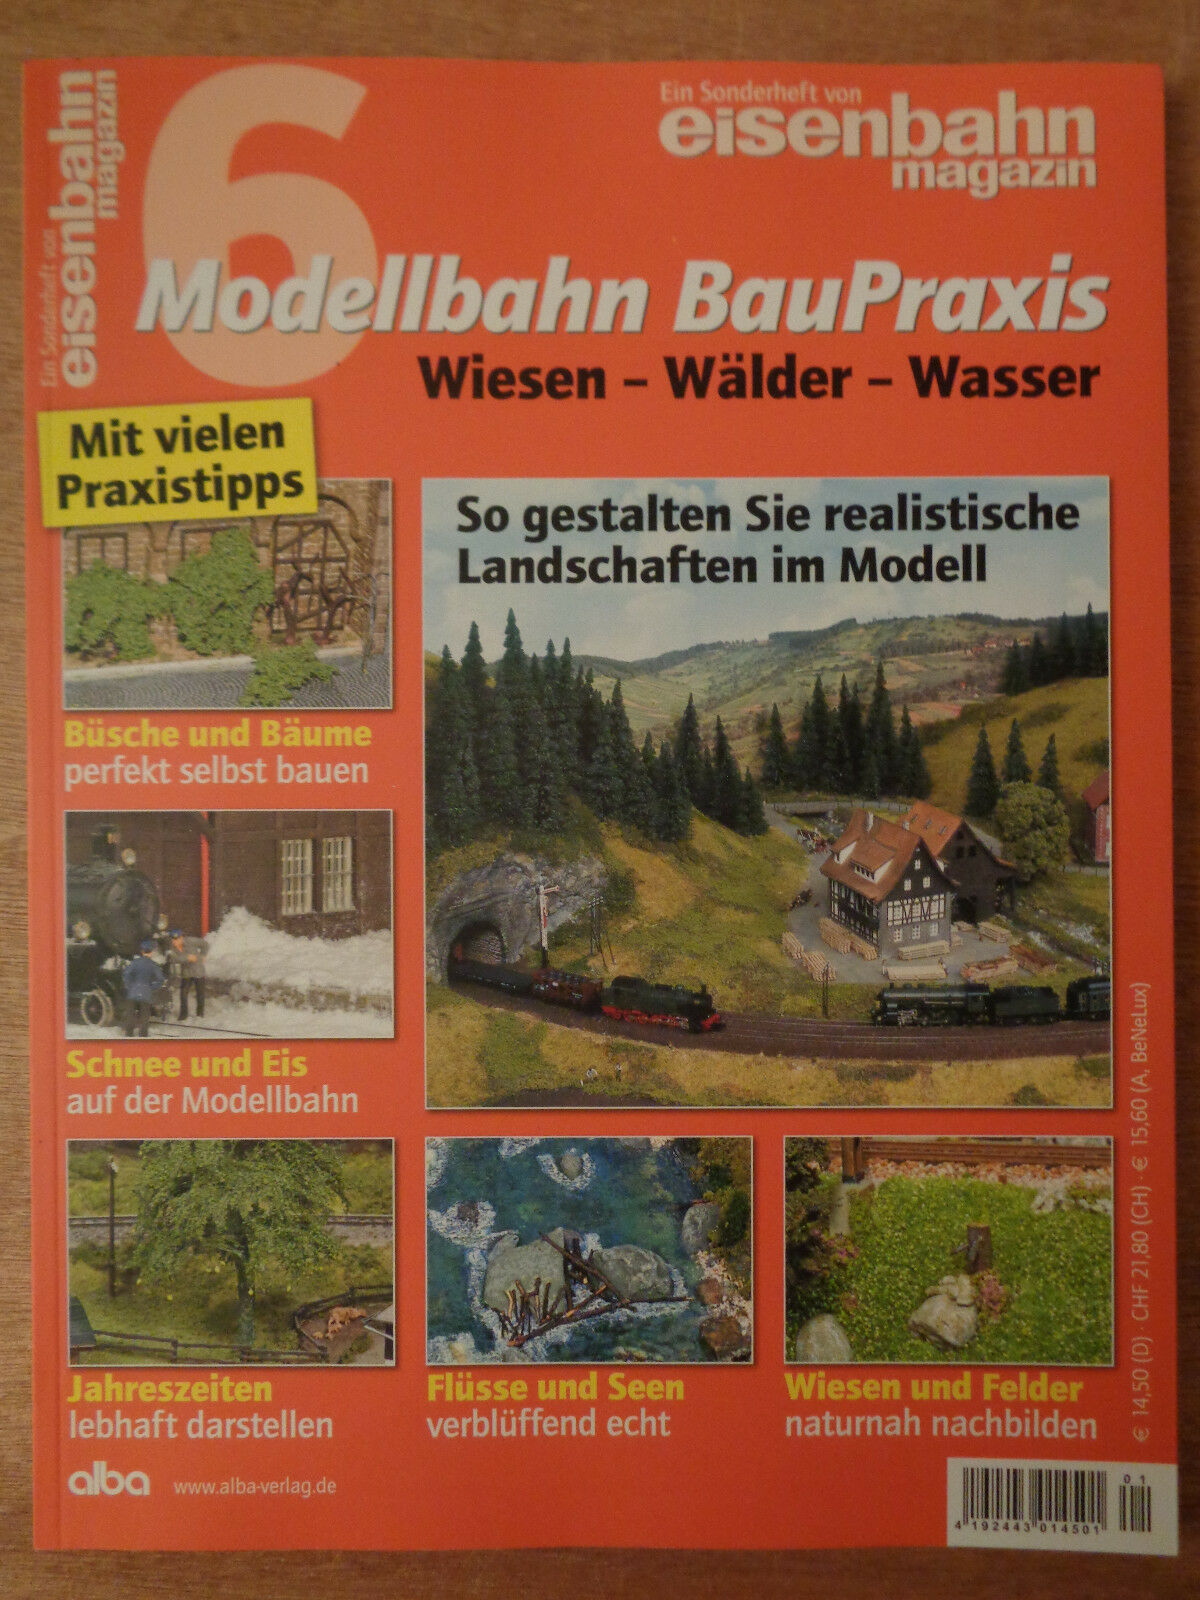 Railway Magazine No.6 Model Railway Baupraxis